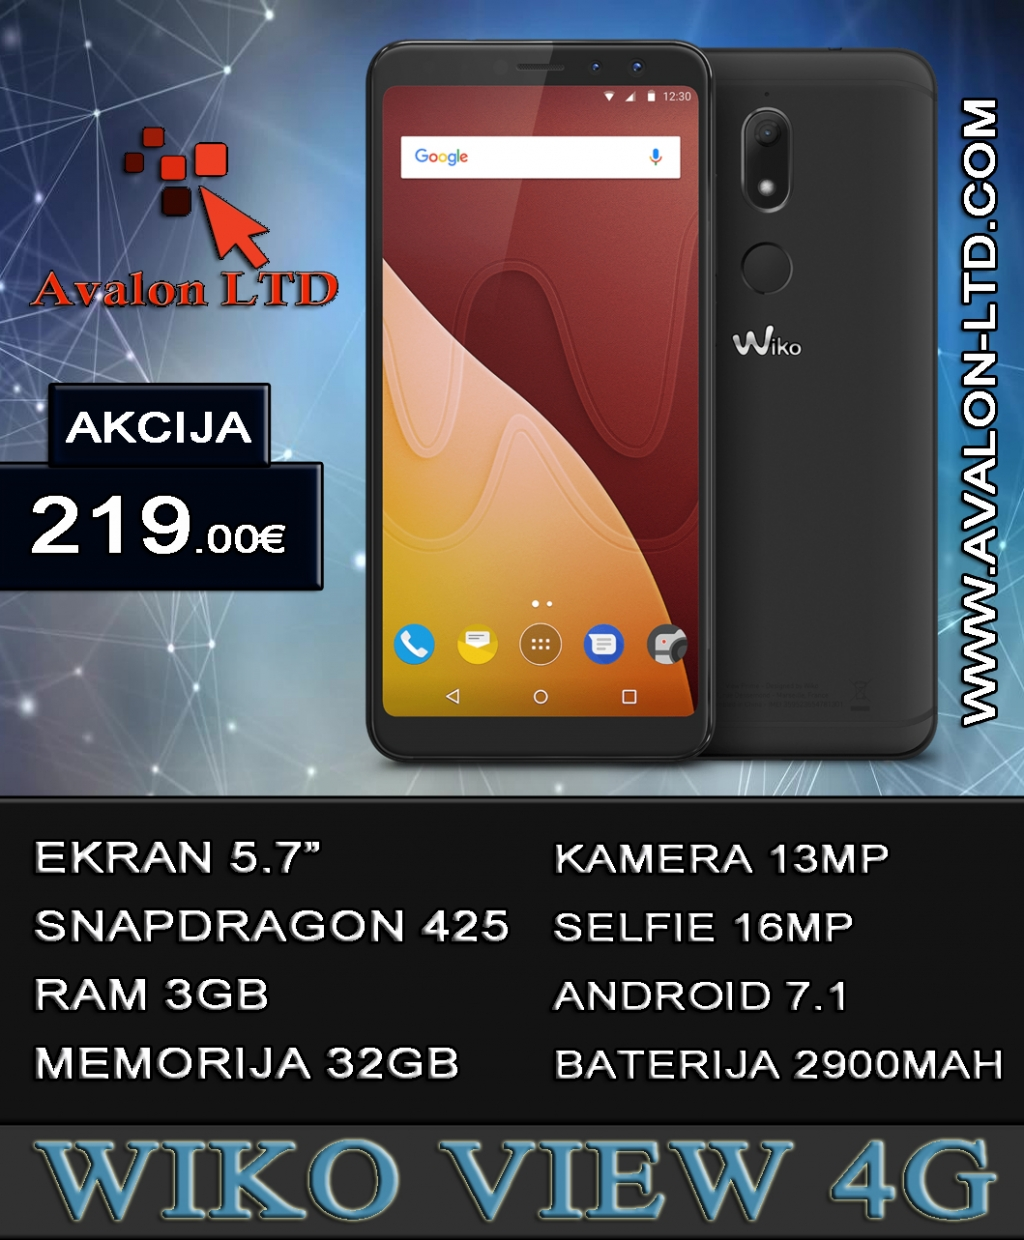 http://avalon-ltd.com/proizvod.php?model=Smartphone-WikoView4GCrveni-30637849